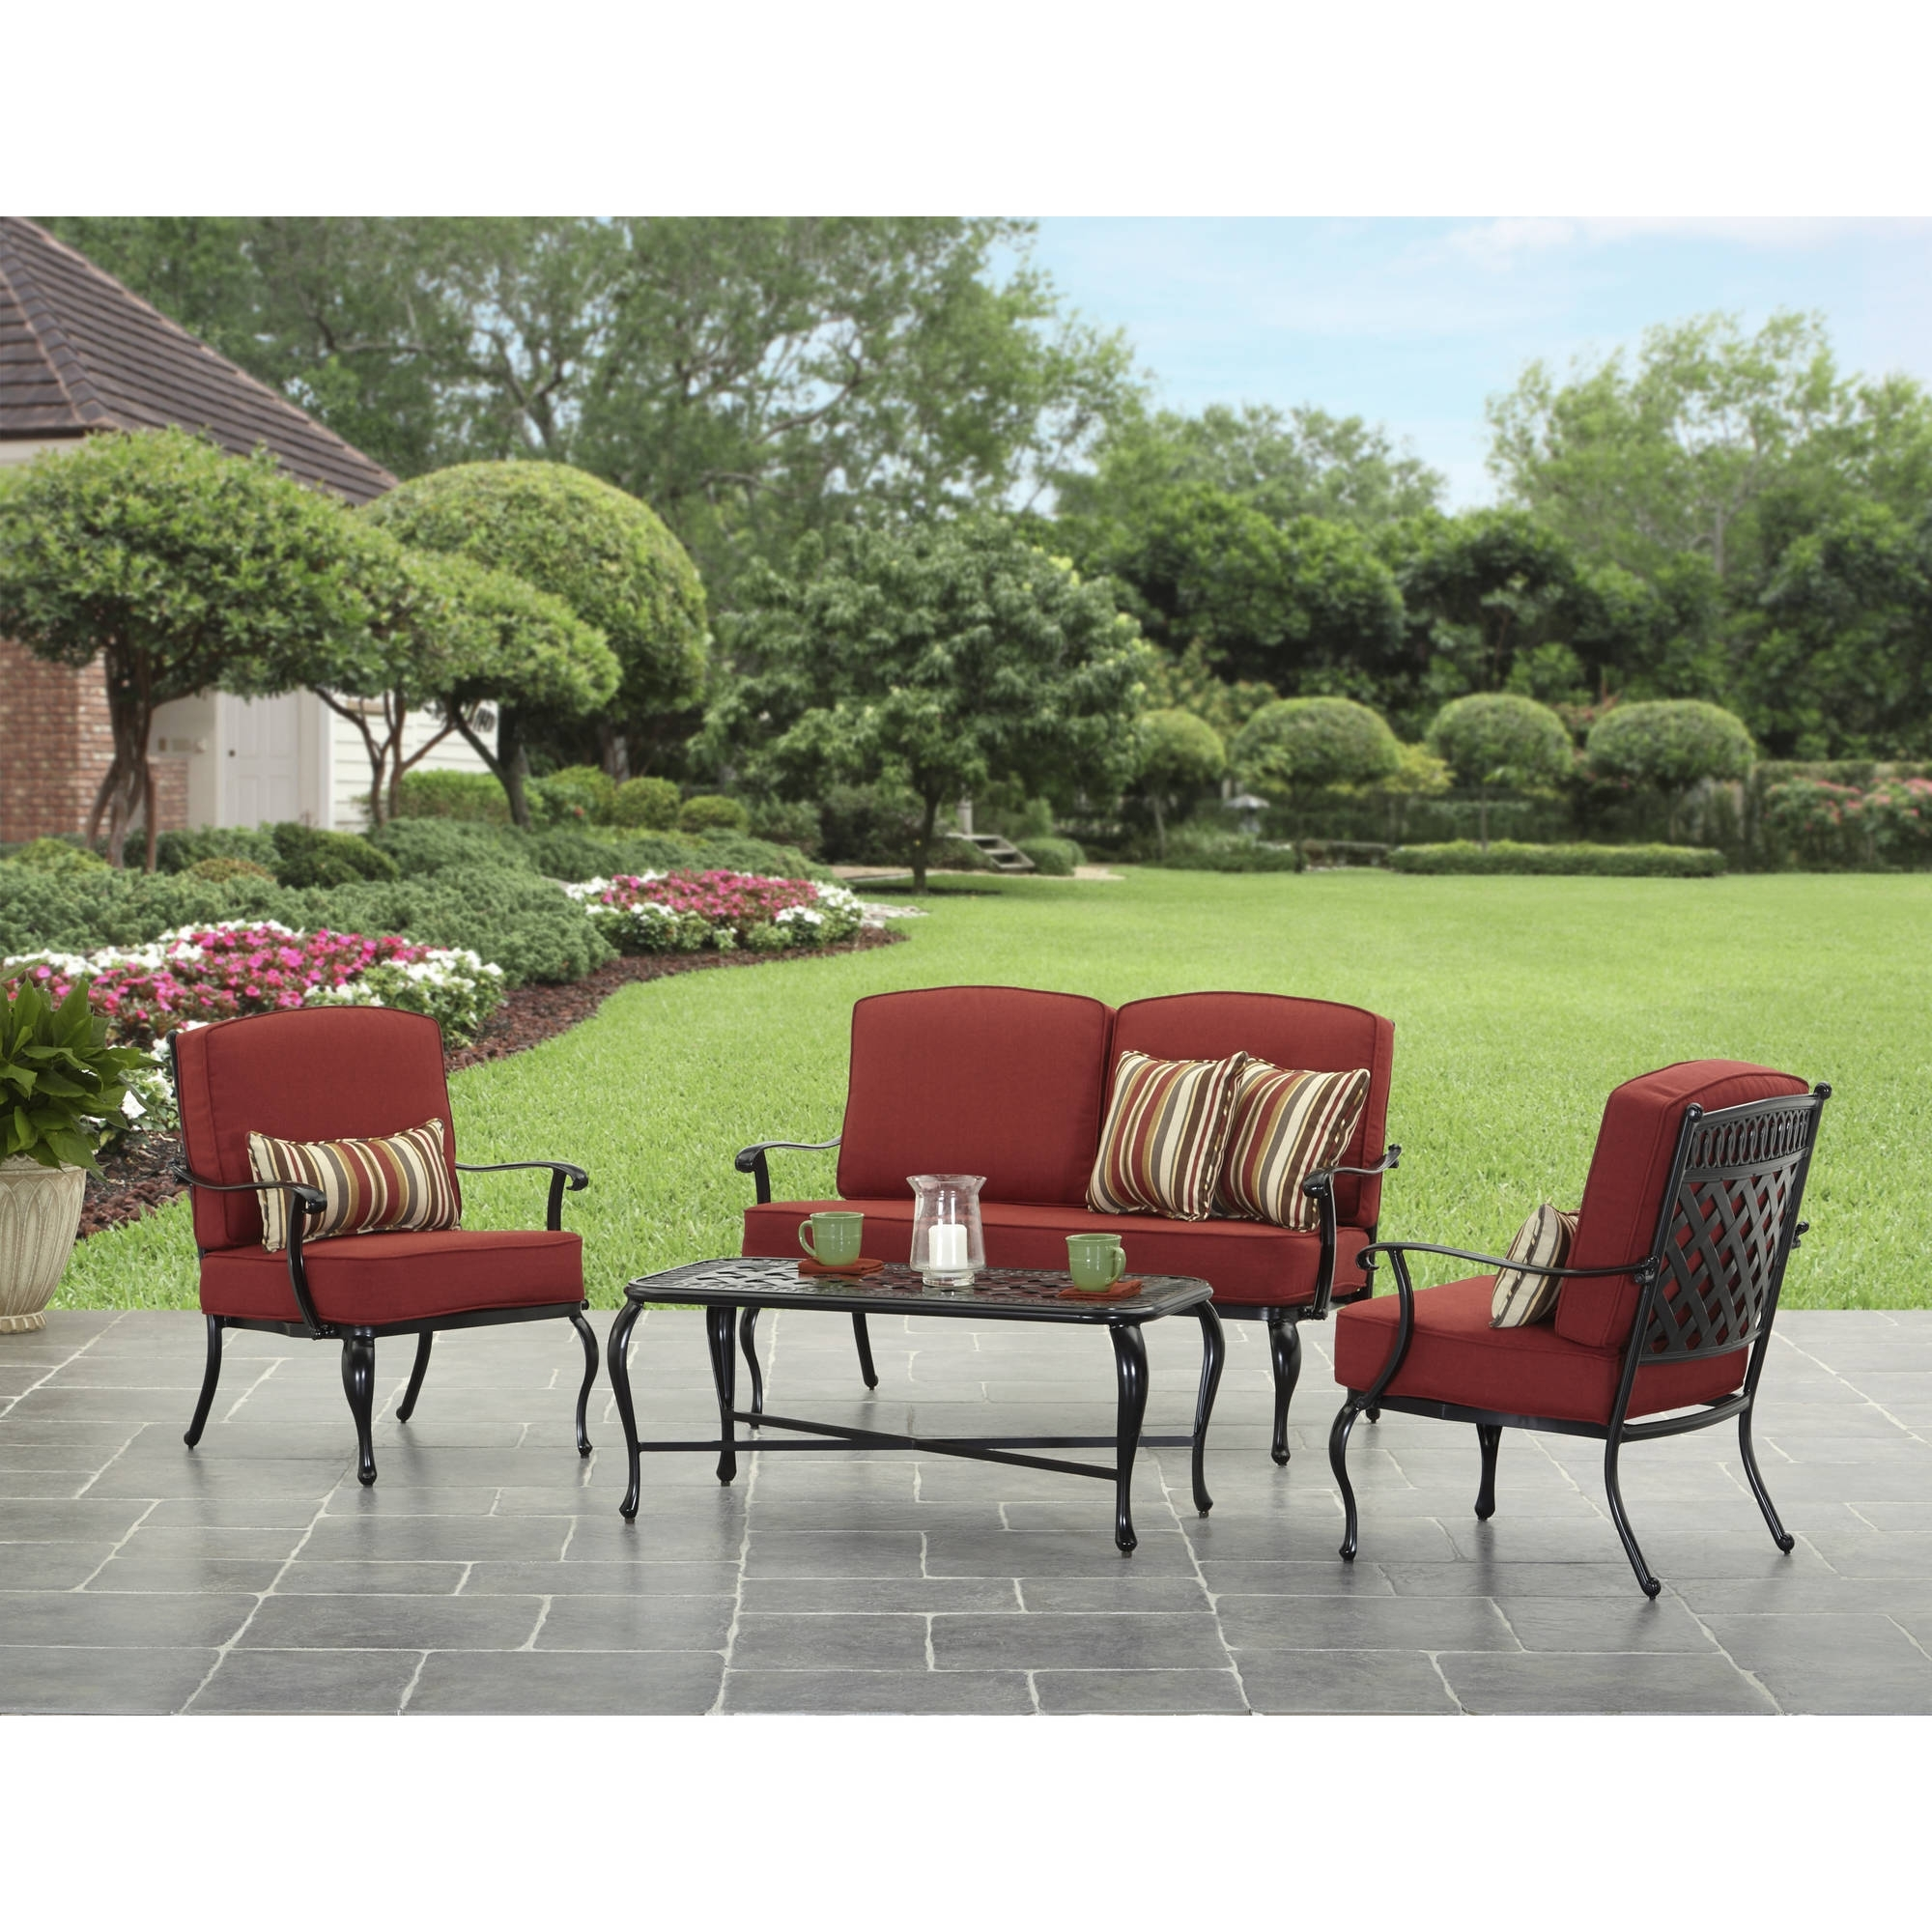 Better Homes And Garden Dawn Hill 4 Piece Outdoor Conversation Set In Famous Walmart Patio Furniture Conversation Sets (View 15 of 15)